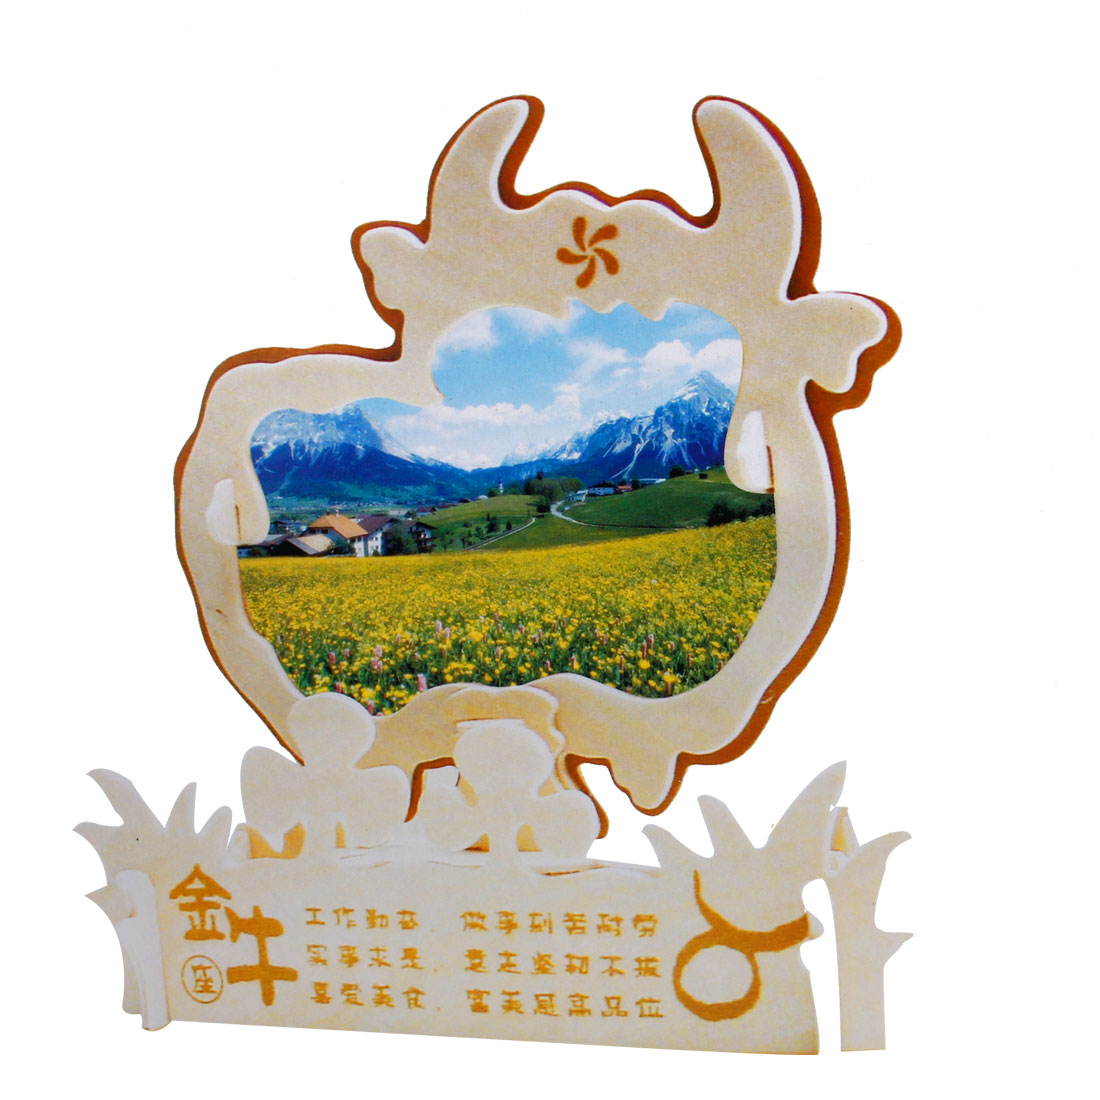 3D Taurus Model Wooden DIY Assembly Puzzled Toy Gift Woodcraft Photo Frame